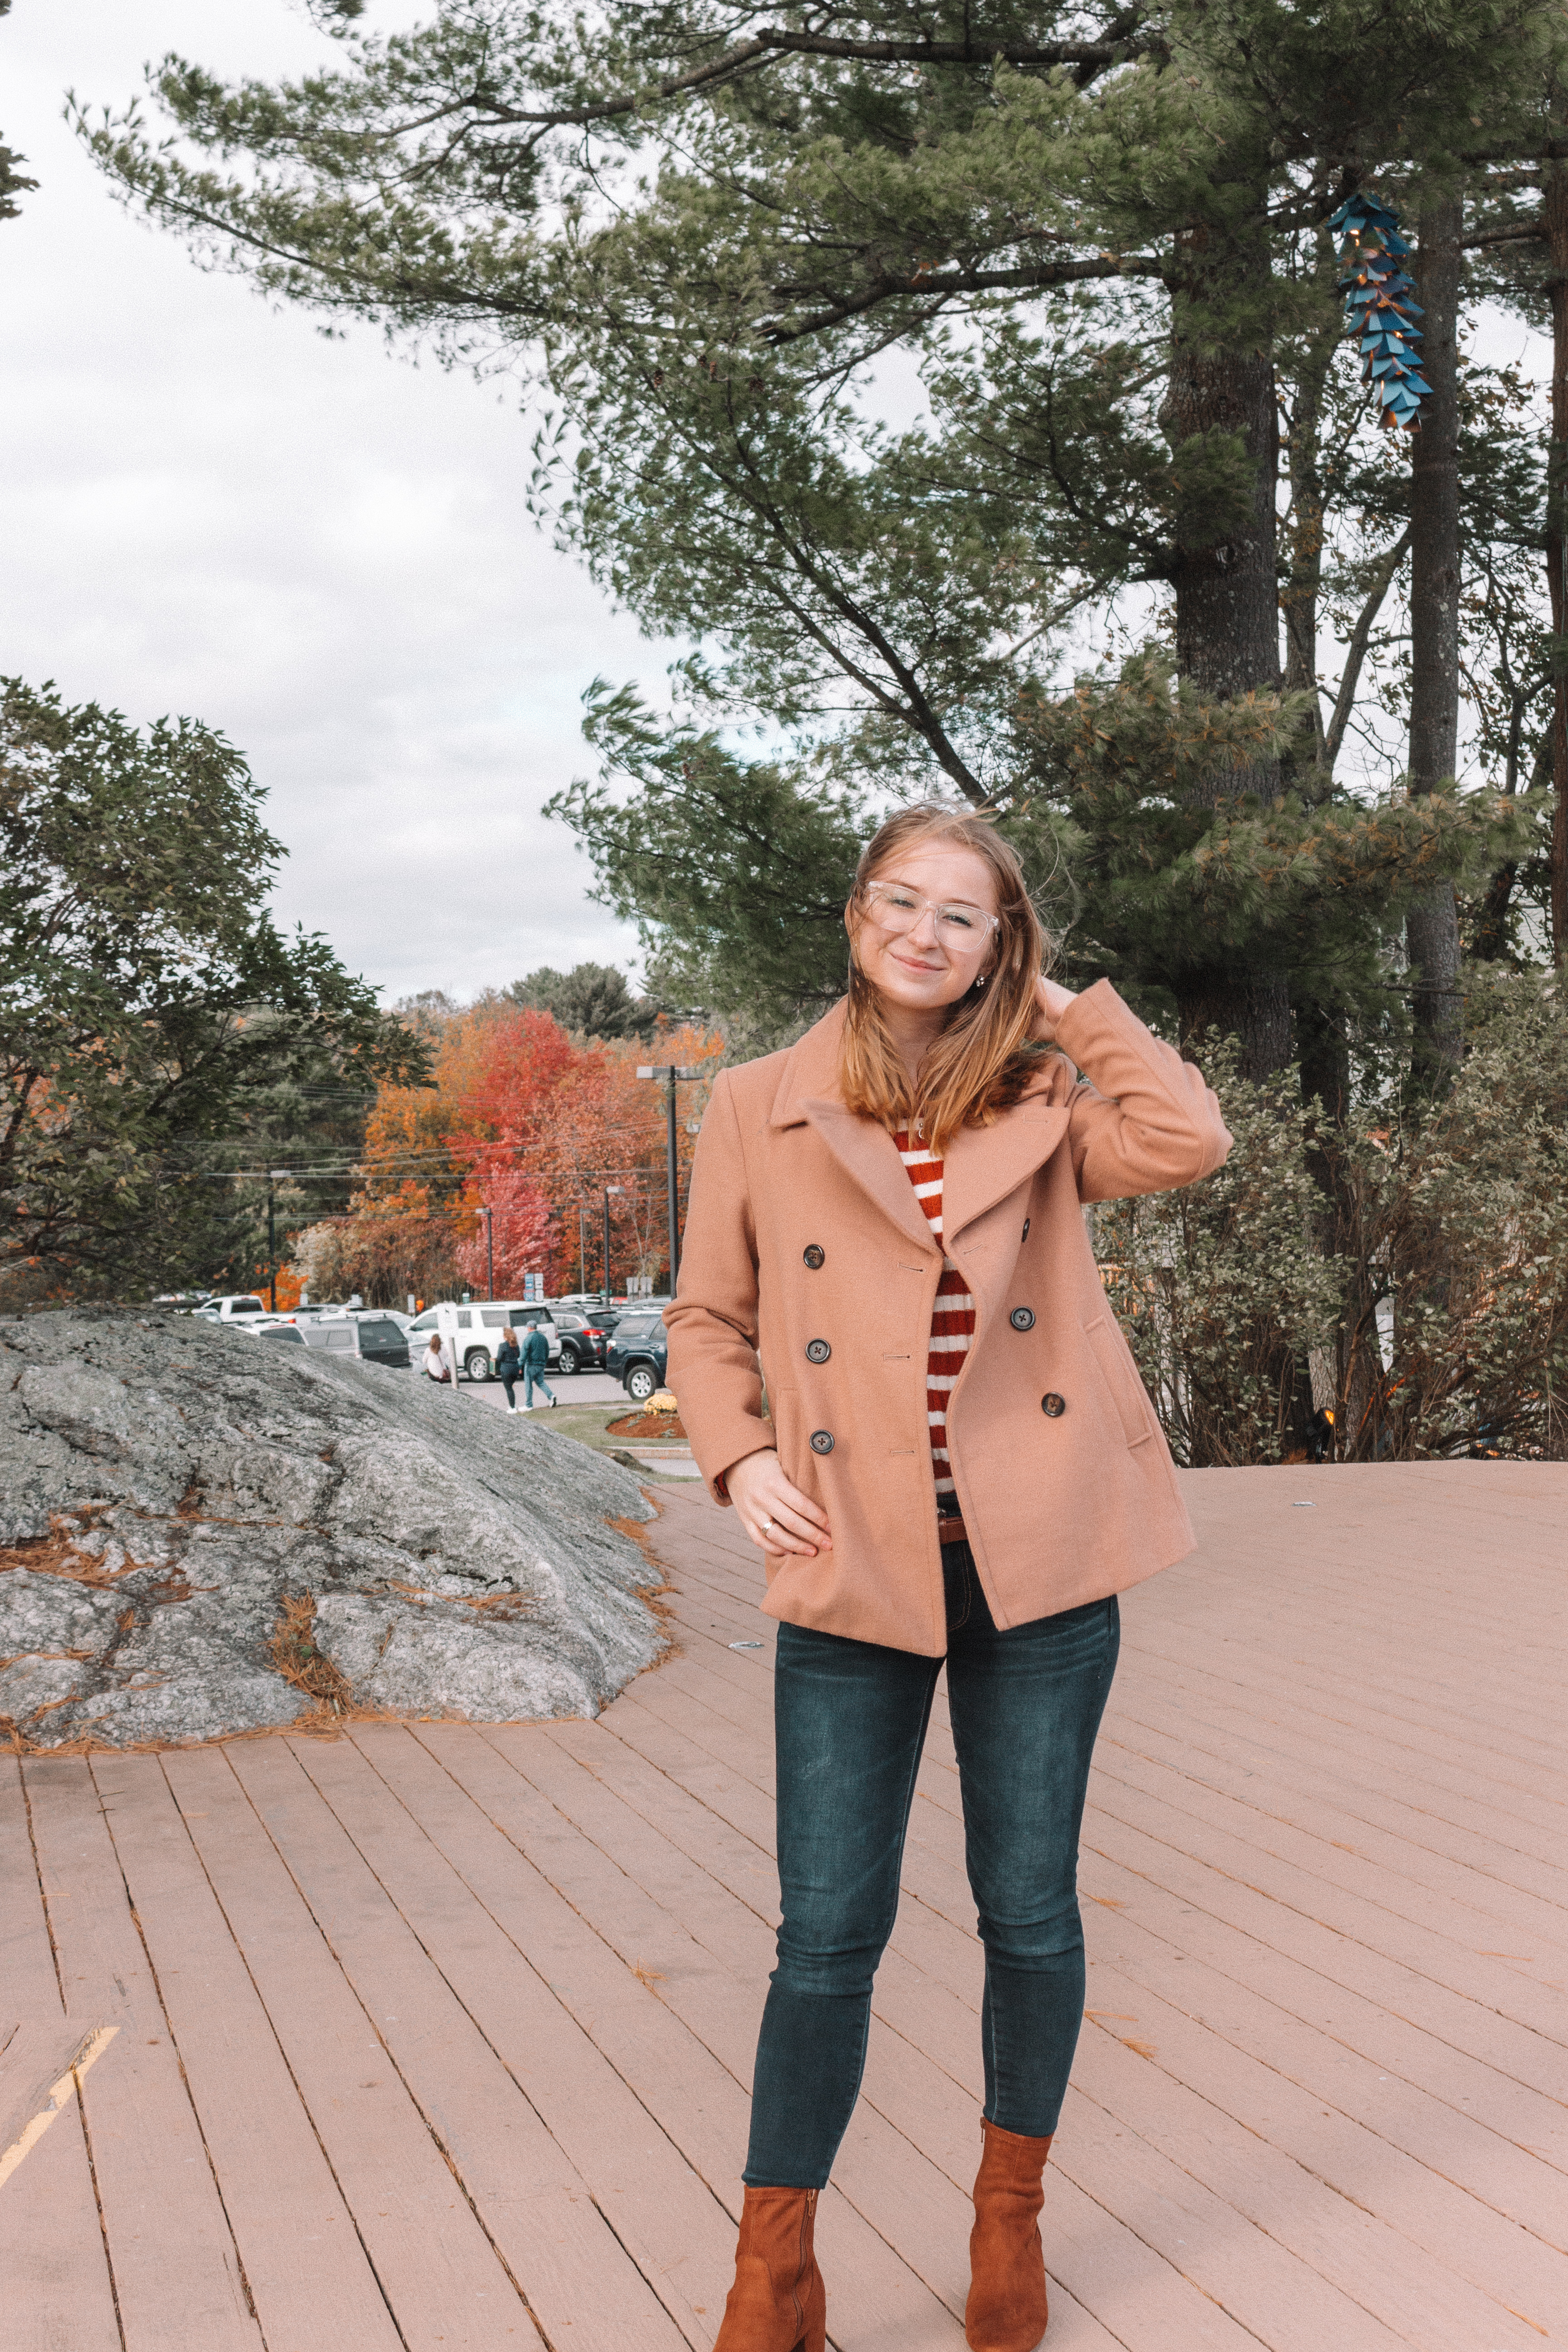 Fall Outfit and Exploring Freeport, Maine | Hey Its Camille Grey #travel #outfit #fall